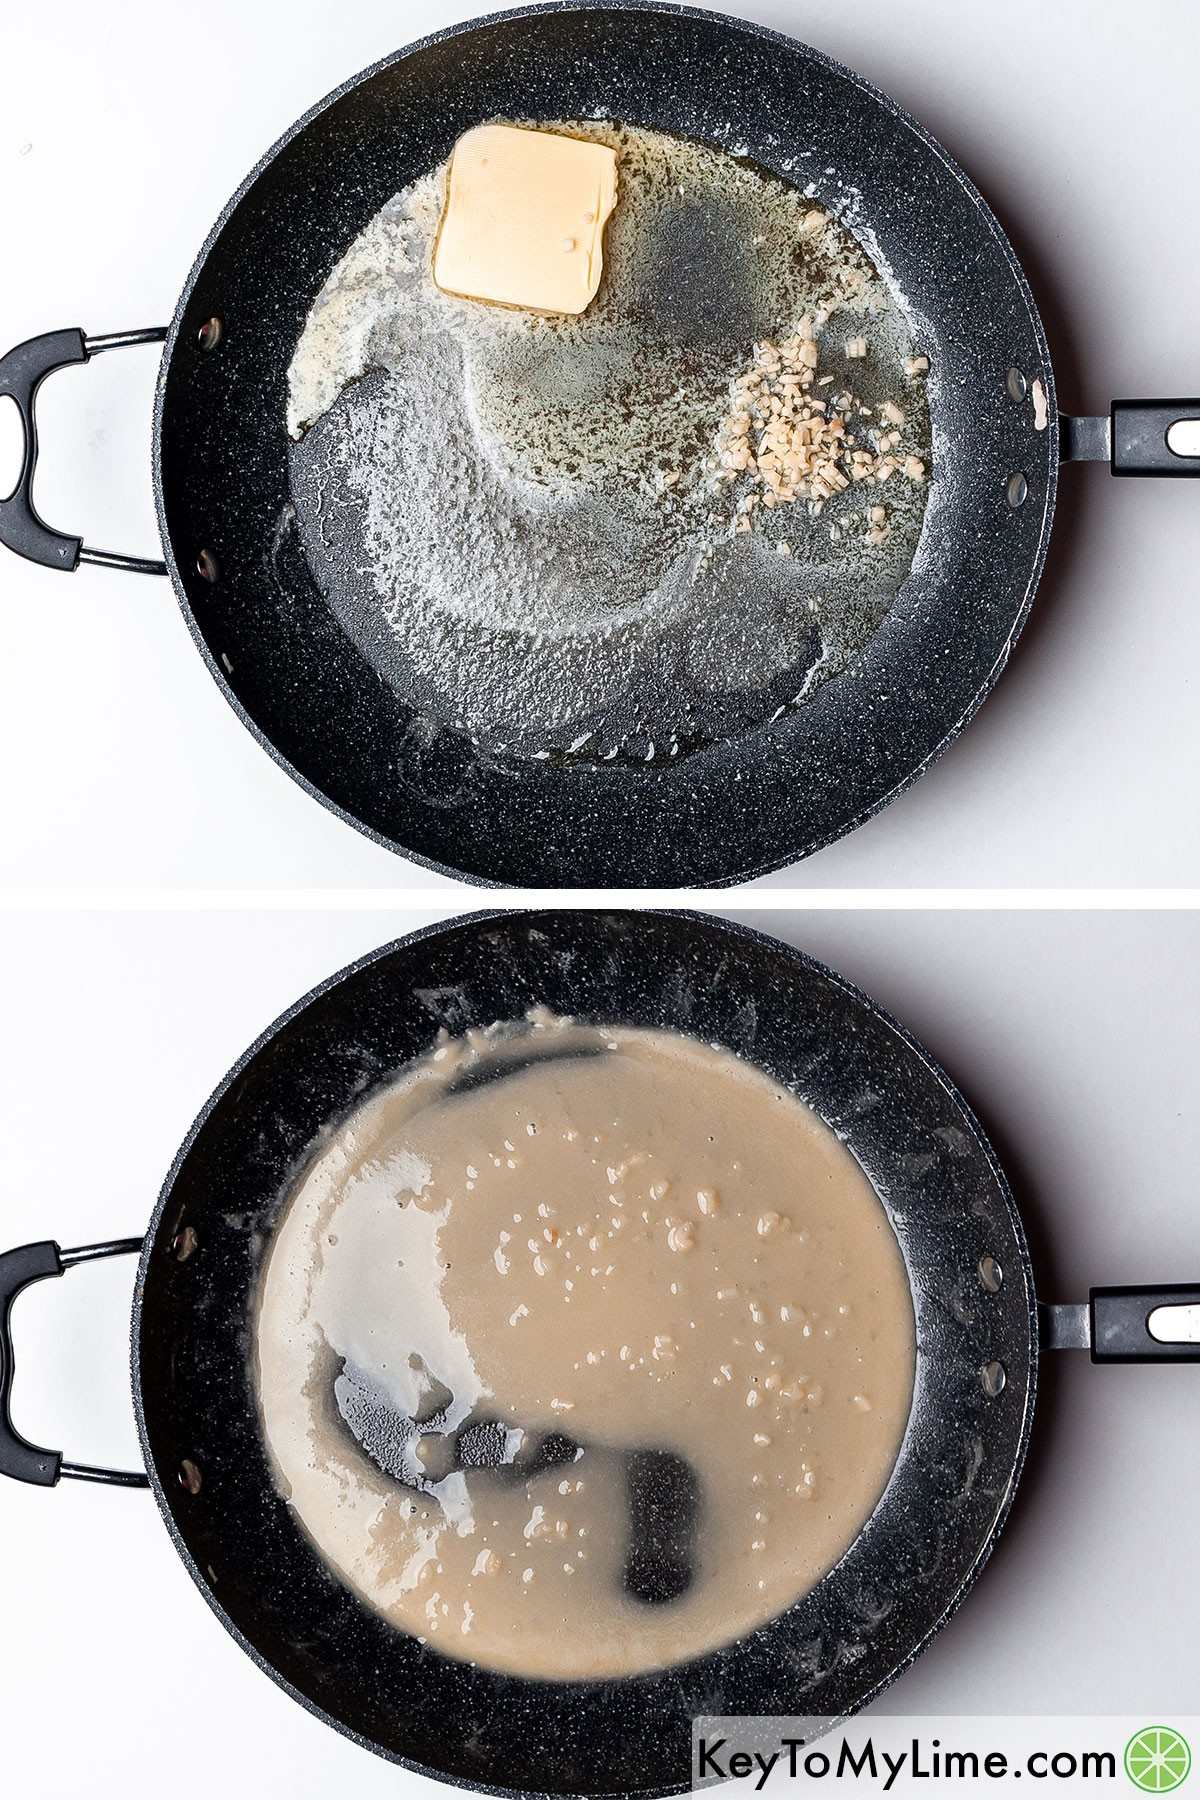 Combining melted butter, minced garlic, and flour to make a roux.